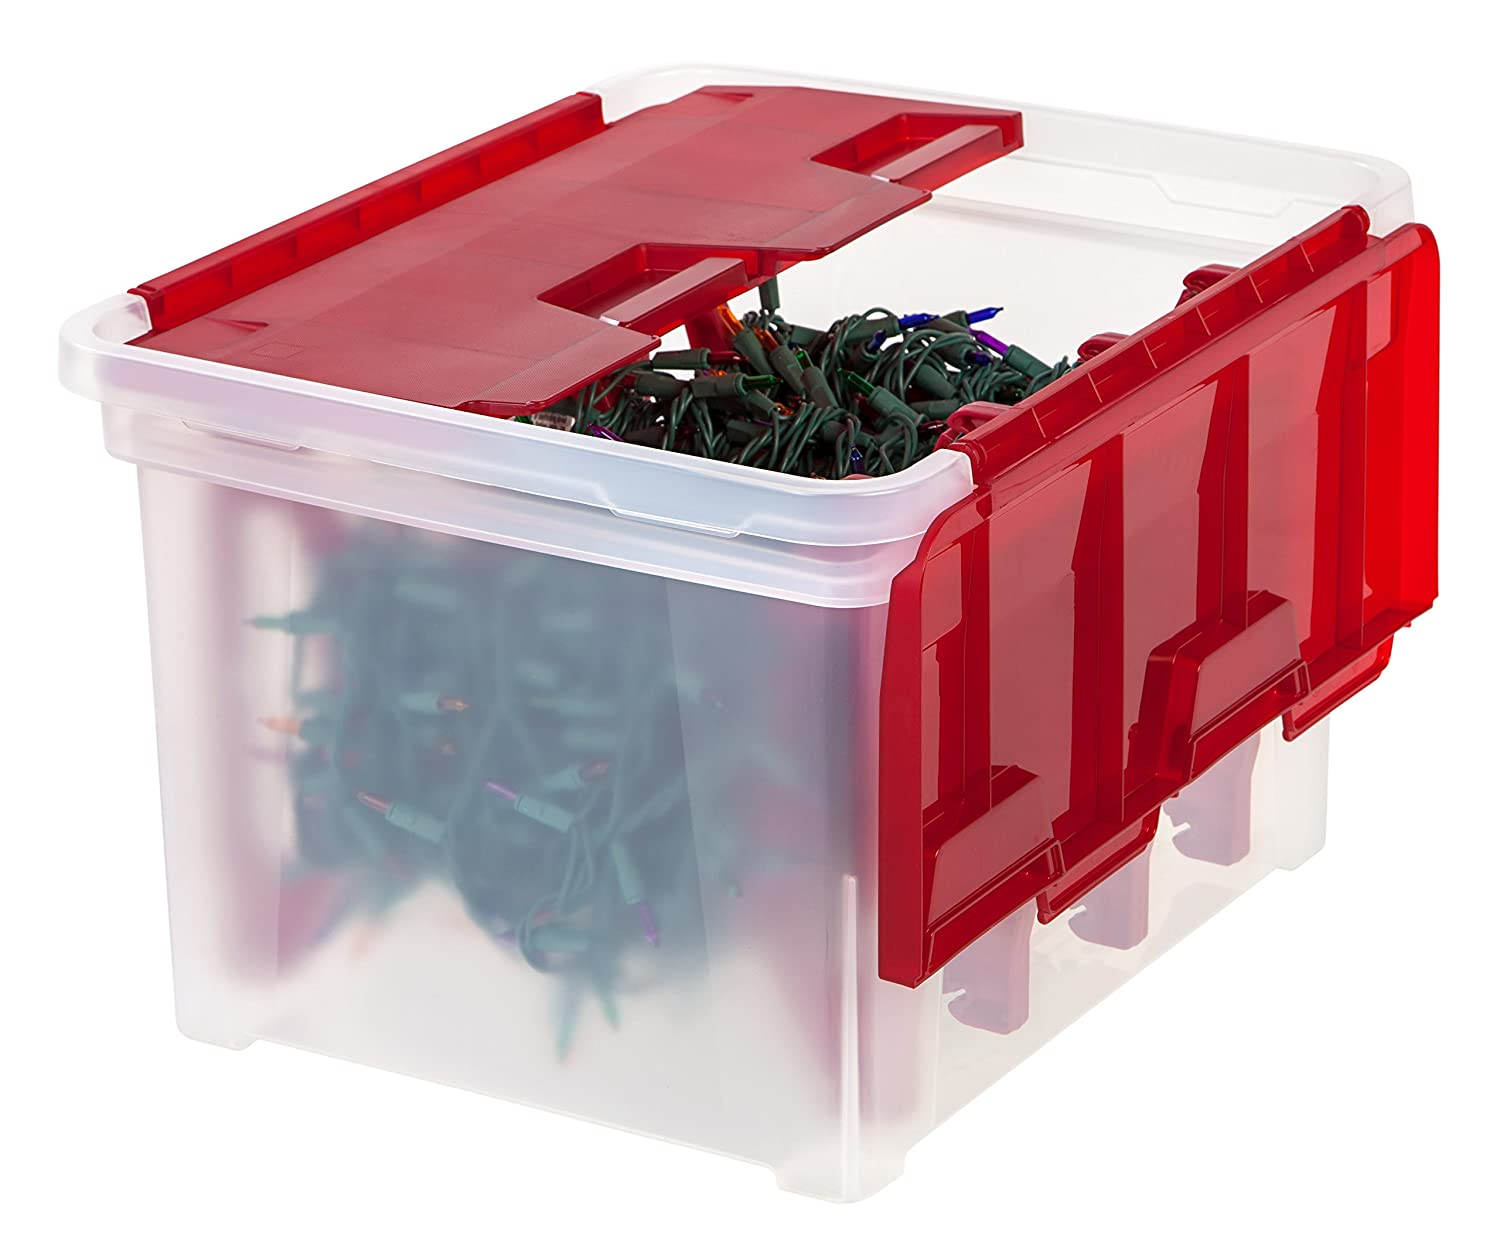 Amazon.com: IRIS Wing Lid Storage Box With 4 Light Wraps, Red: Home U0026  Kitchen